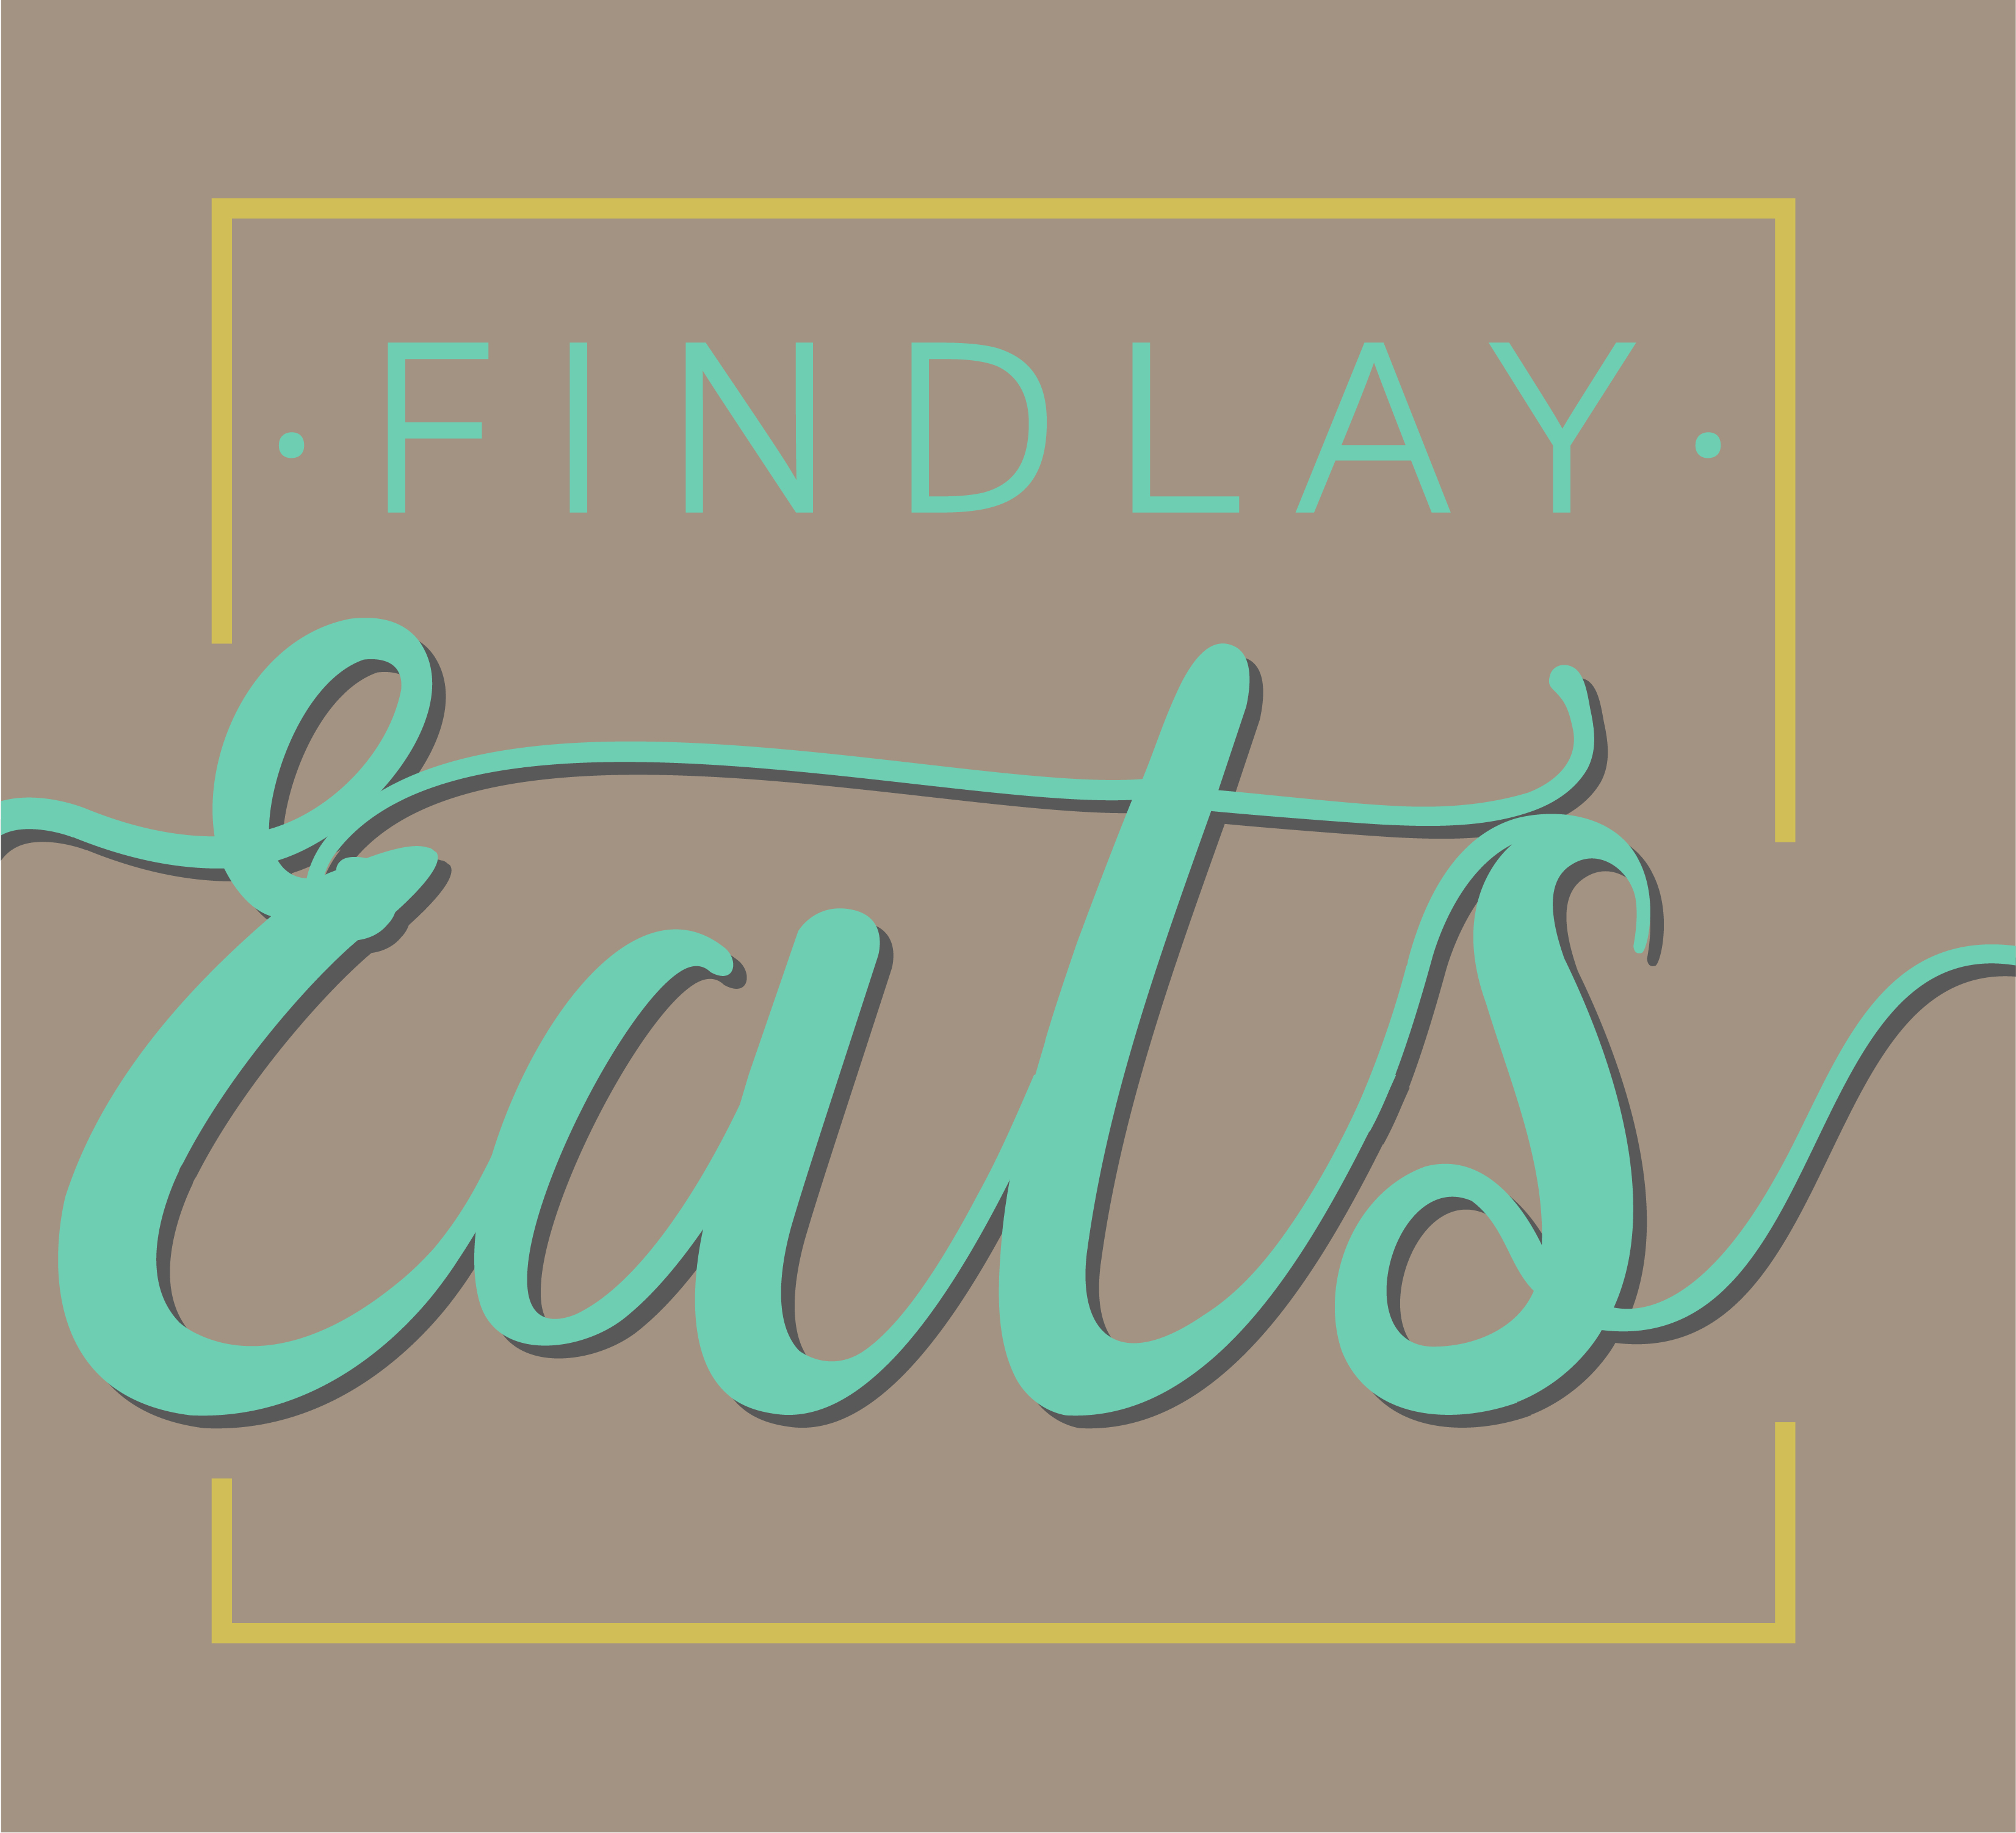 Findlay eats cropped logo